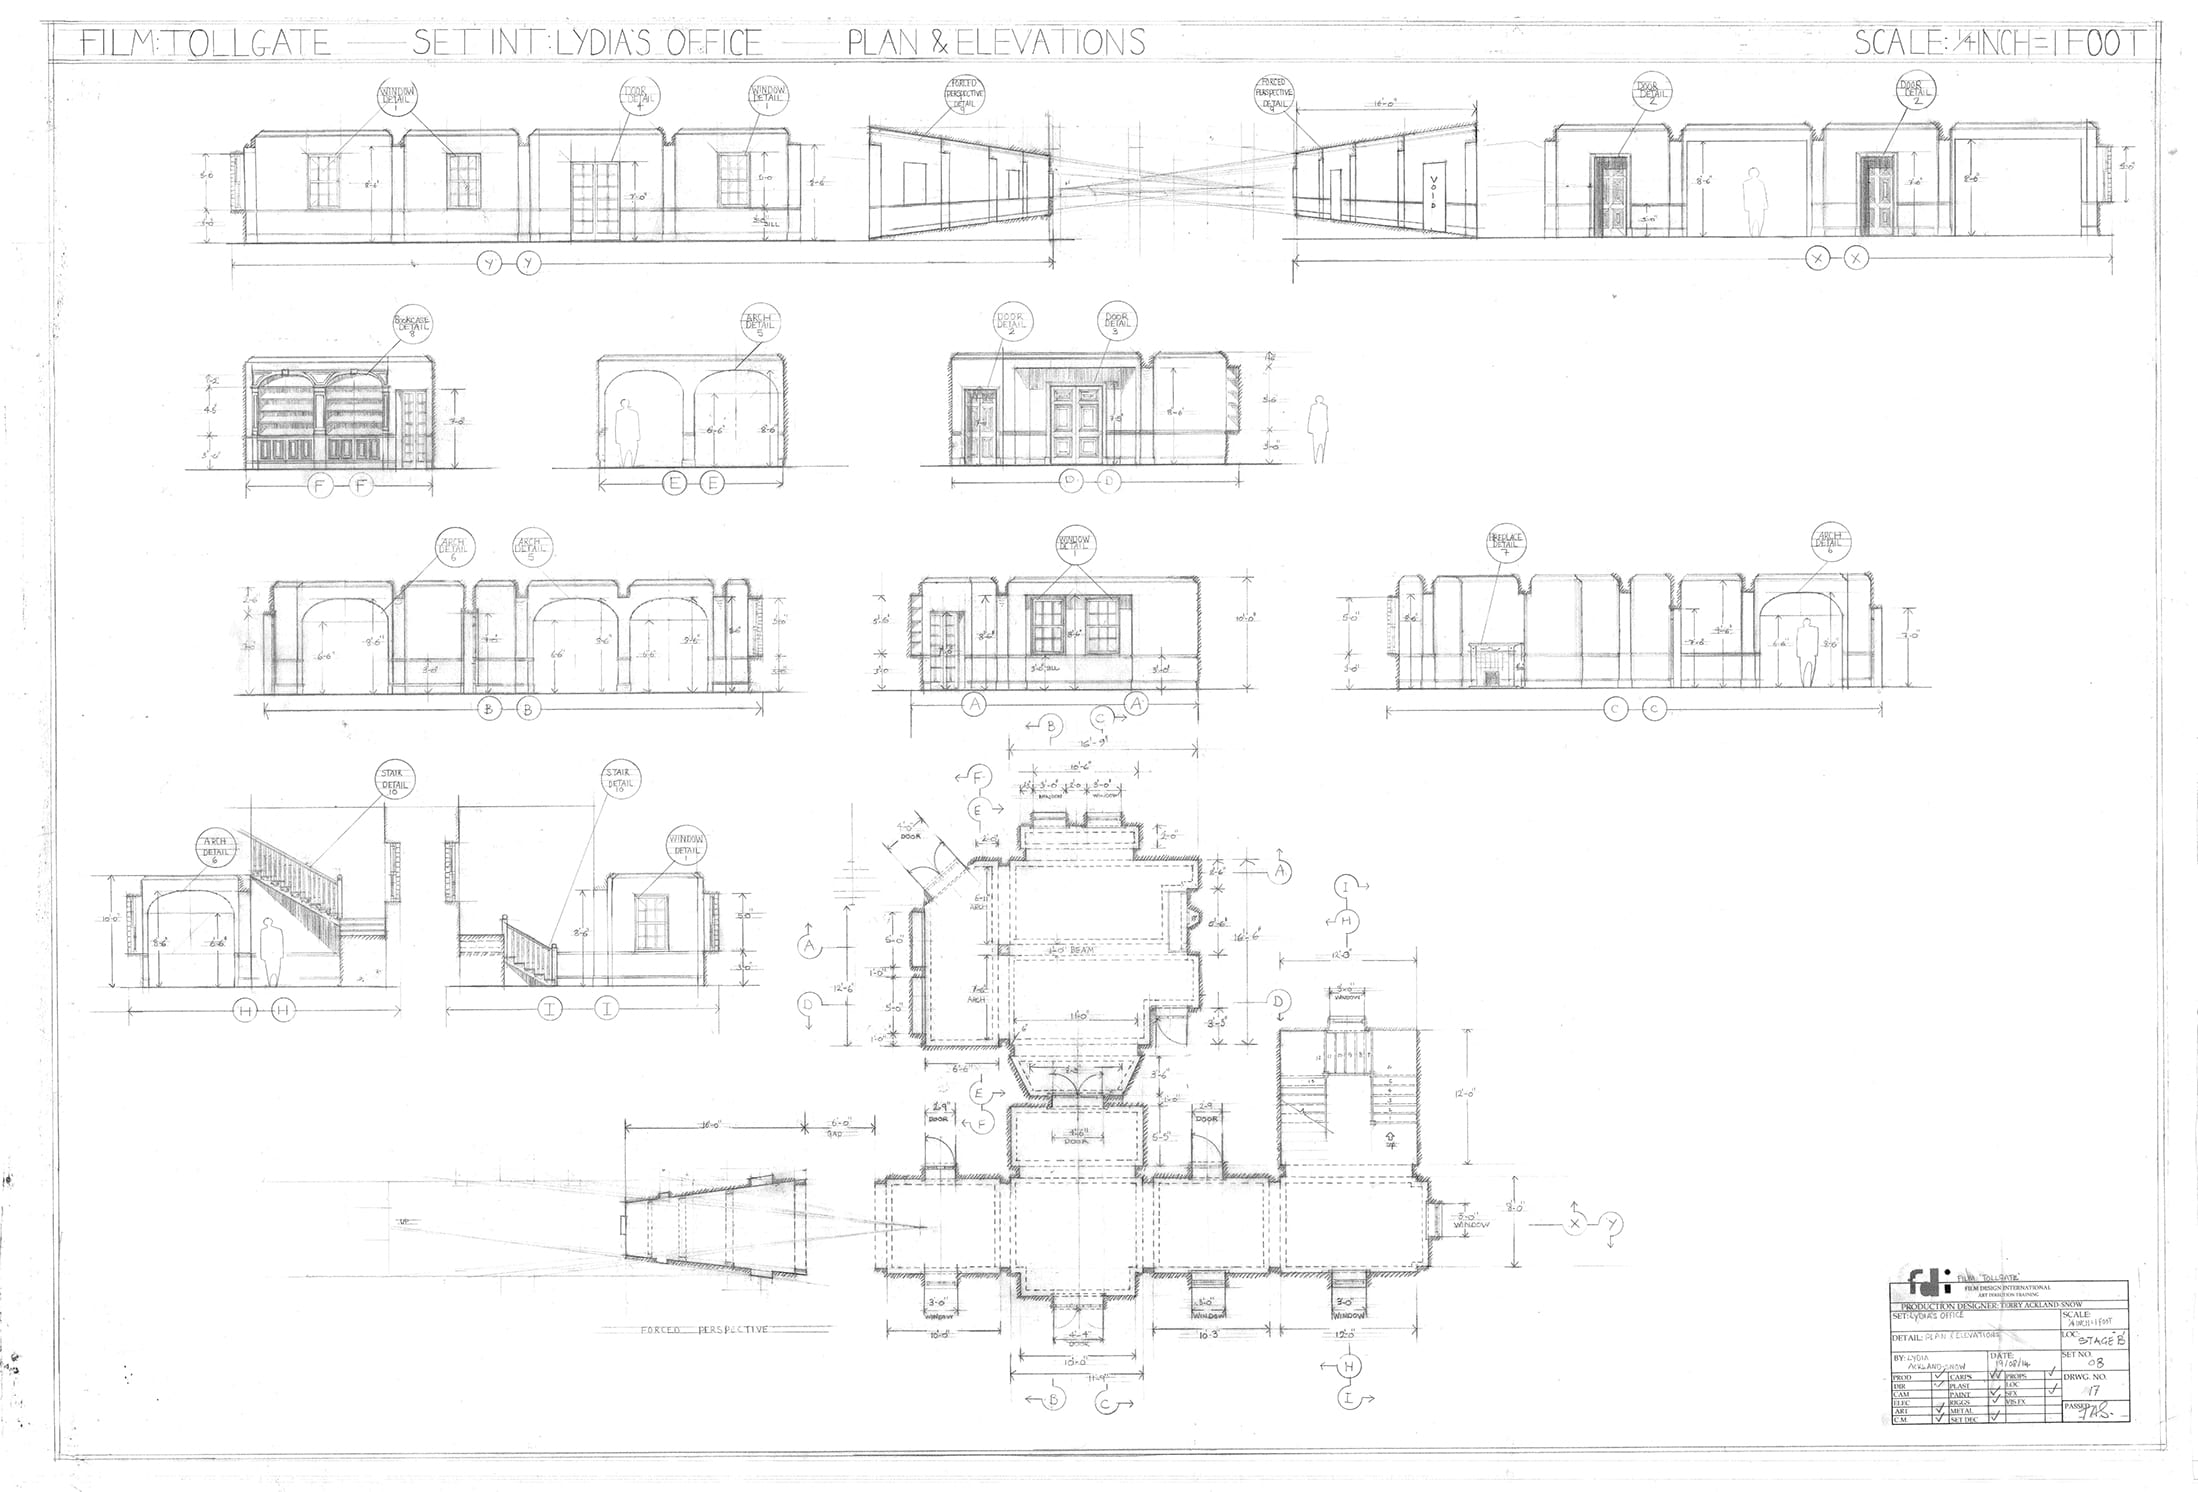 FDi - Set Drawing